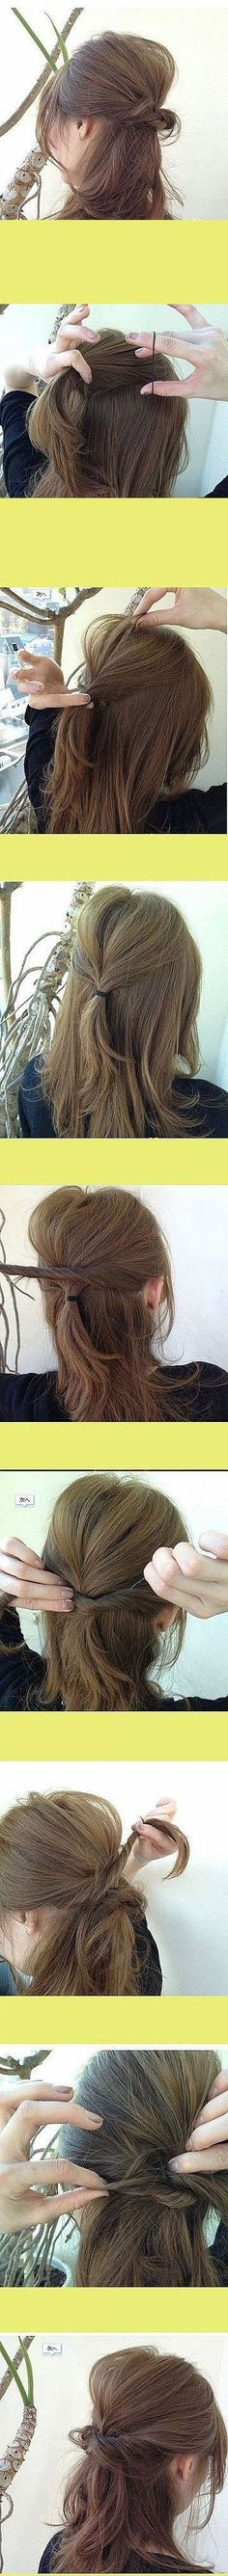 Beautiful Hair Tutorial | Click to see More Beauty Tutorials.